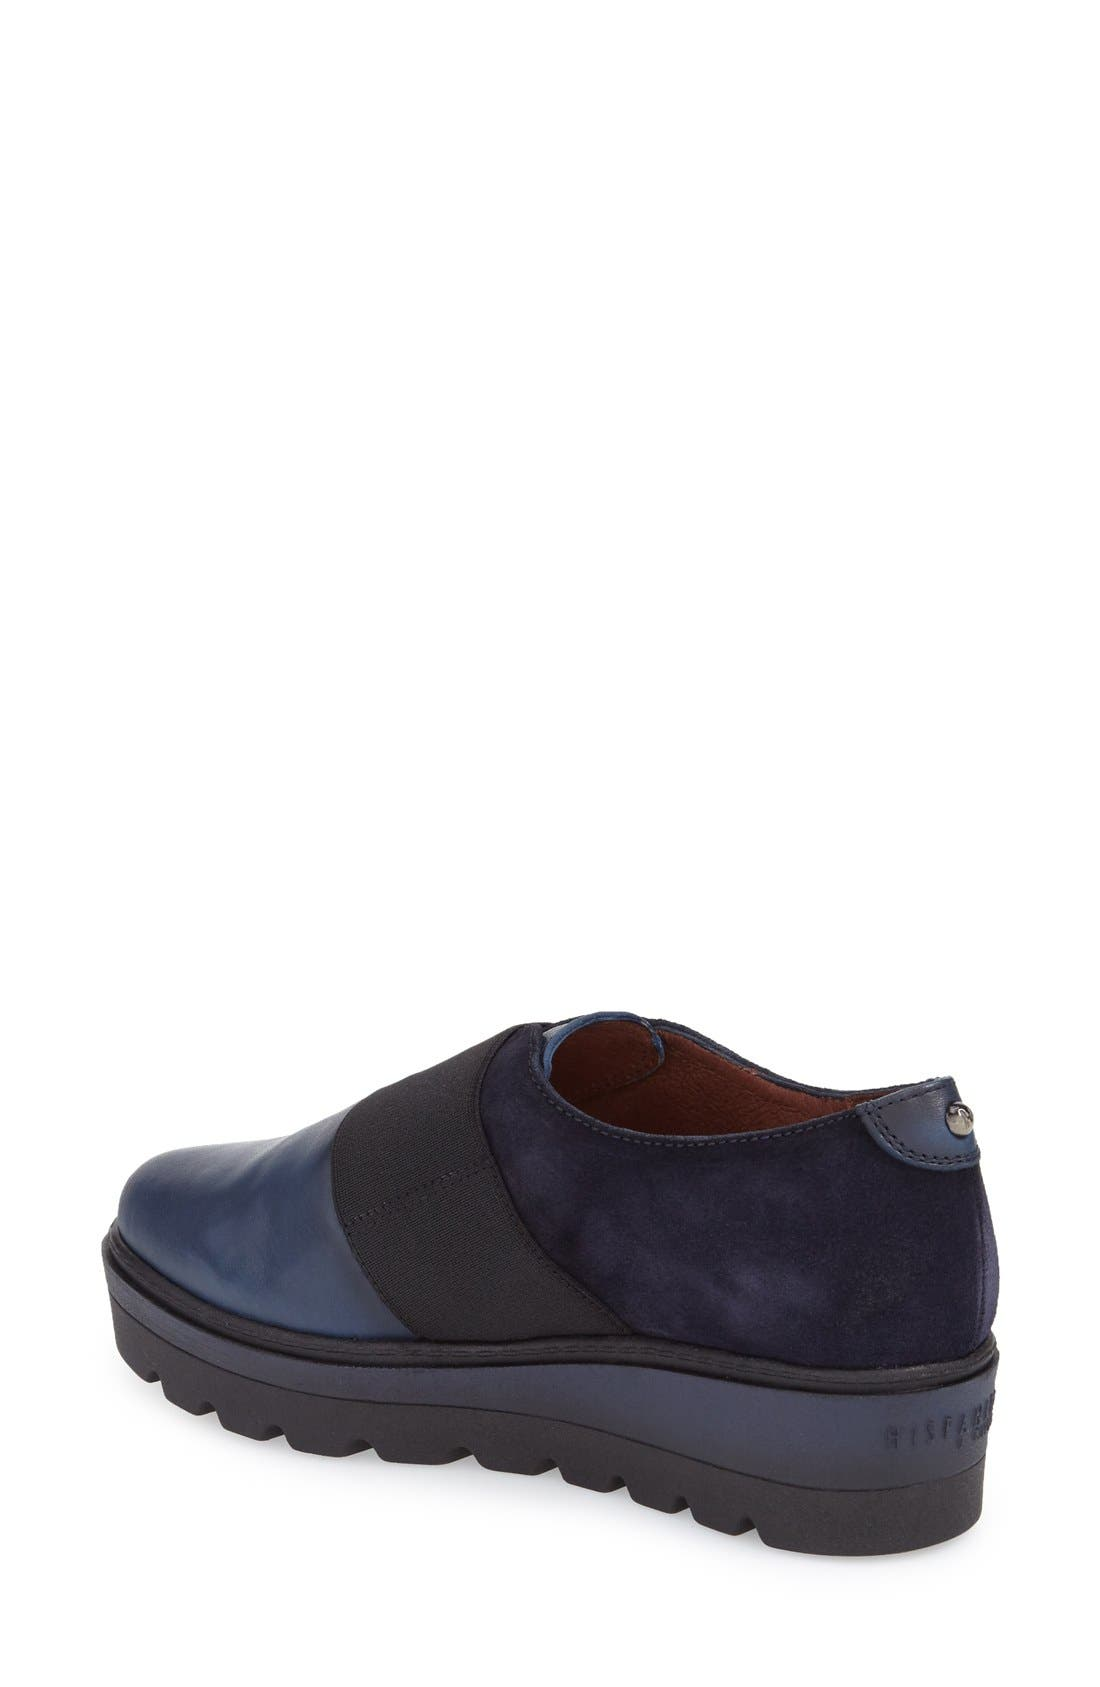 'Ardia' Slip-On Platform Flat,                             Alternate thumbnail 2, color,                             Soho Blue Leather